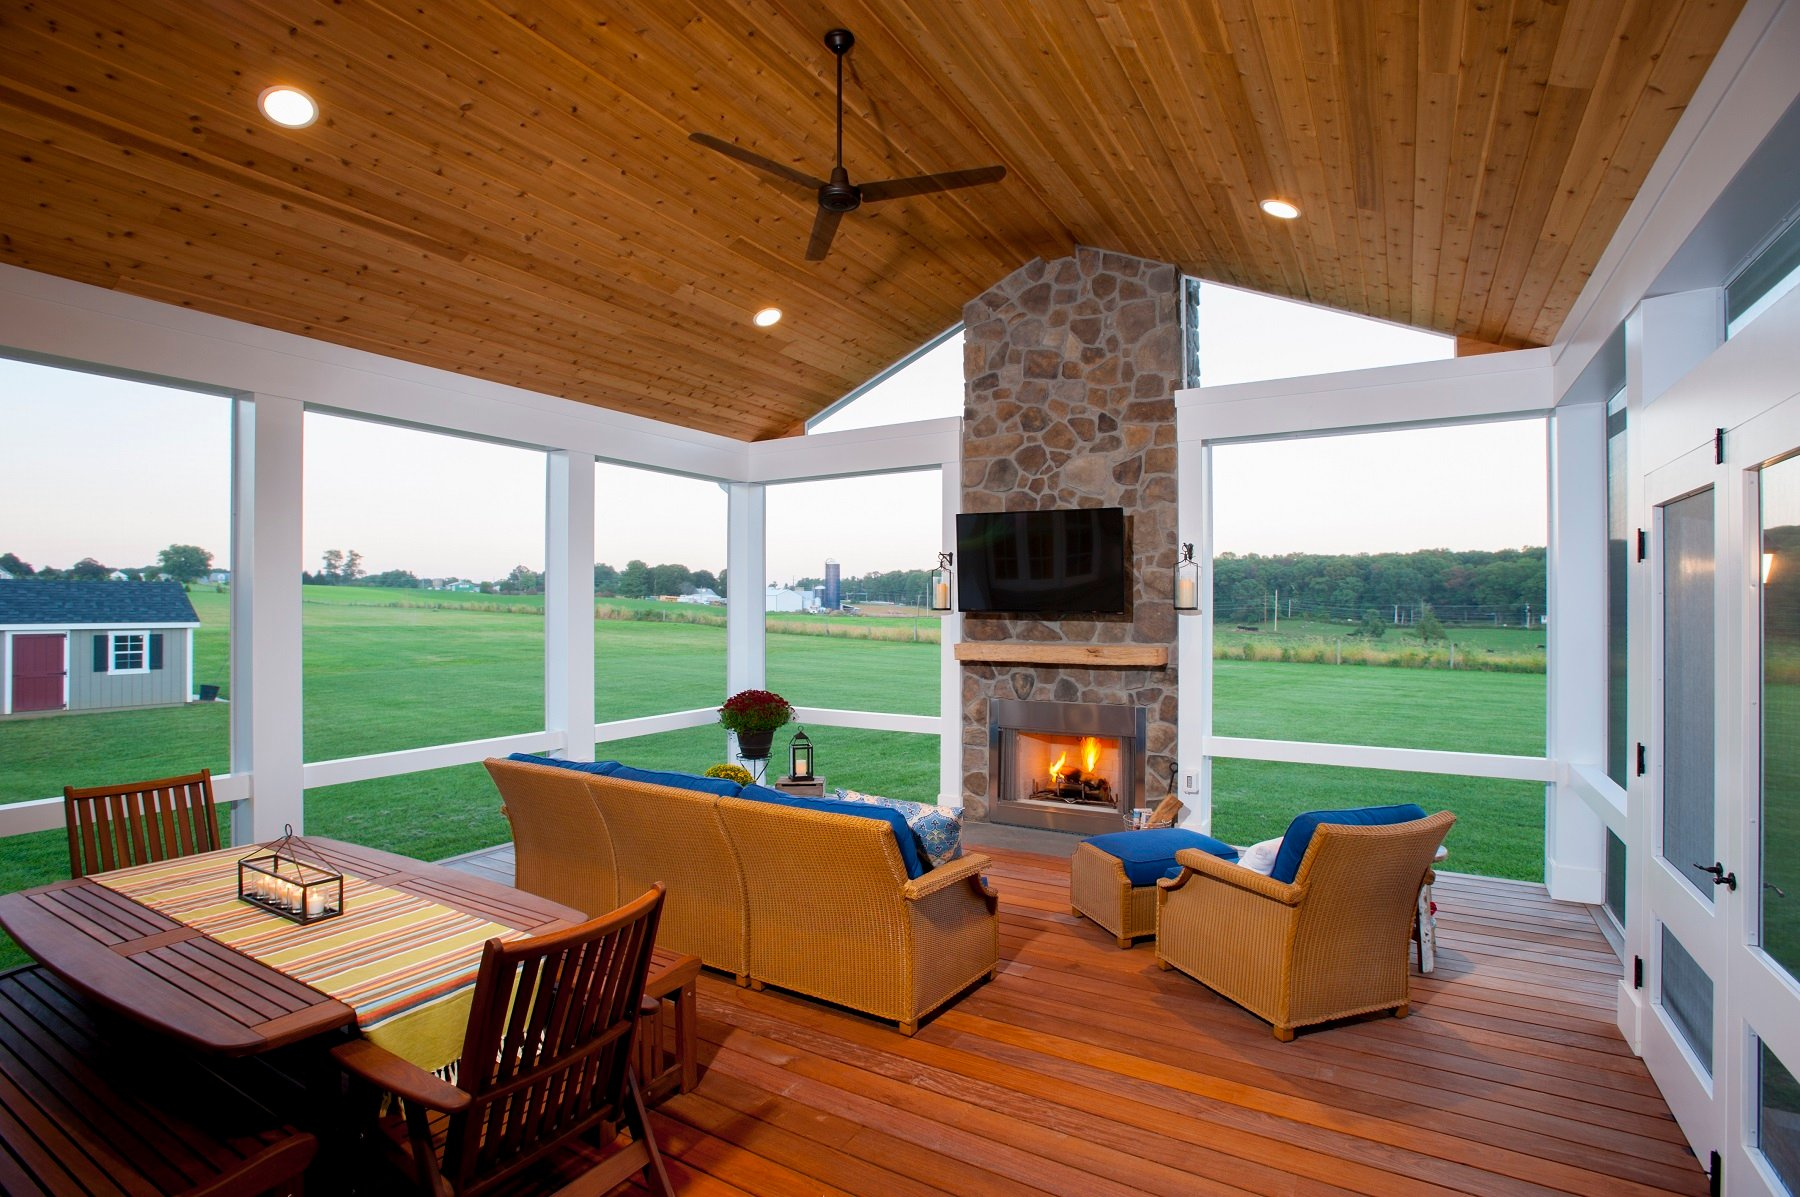 Custom Screened Porch Design In Maryland With Stone